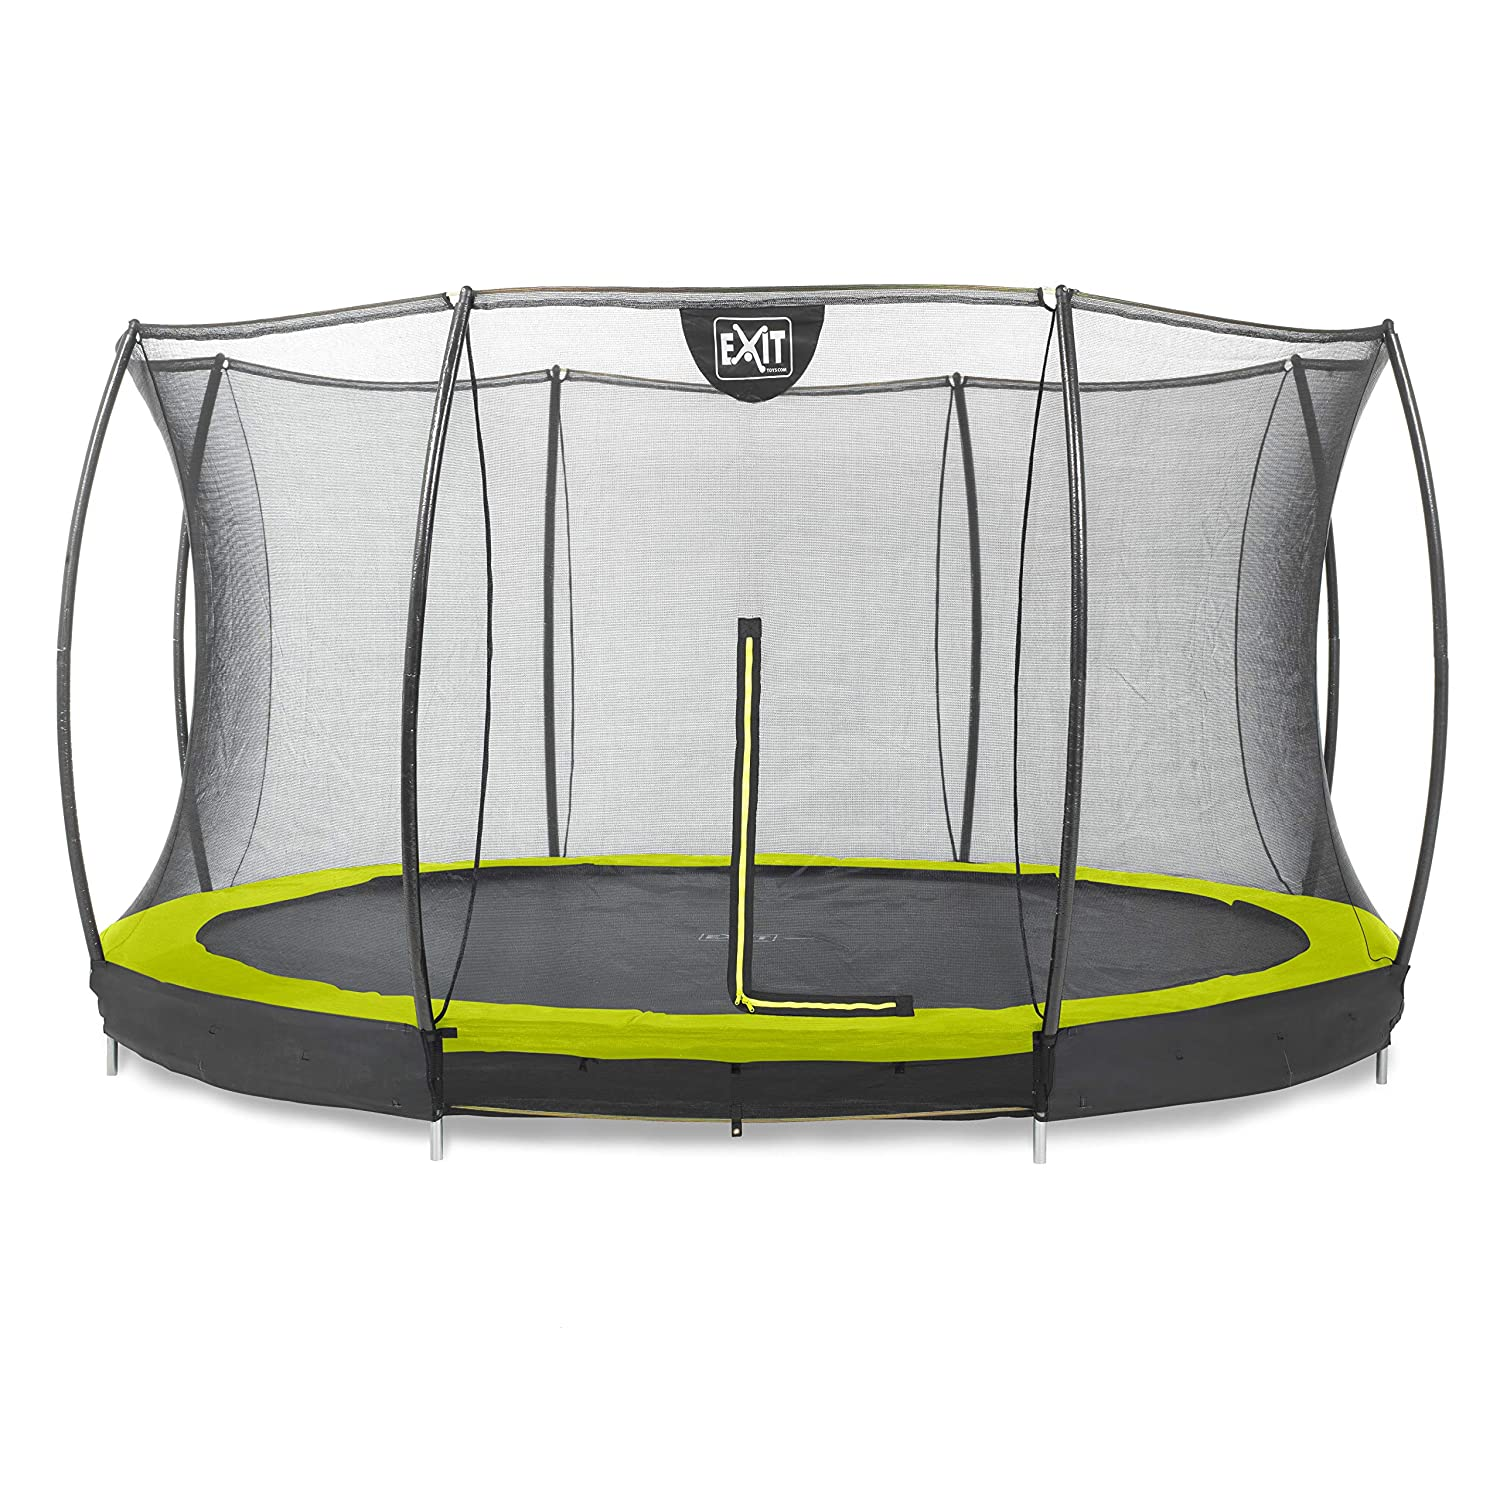 Exit - Silhouette Ground + Safetynet 427 (14ft) Limone